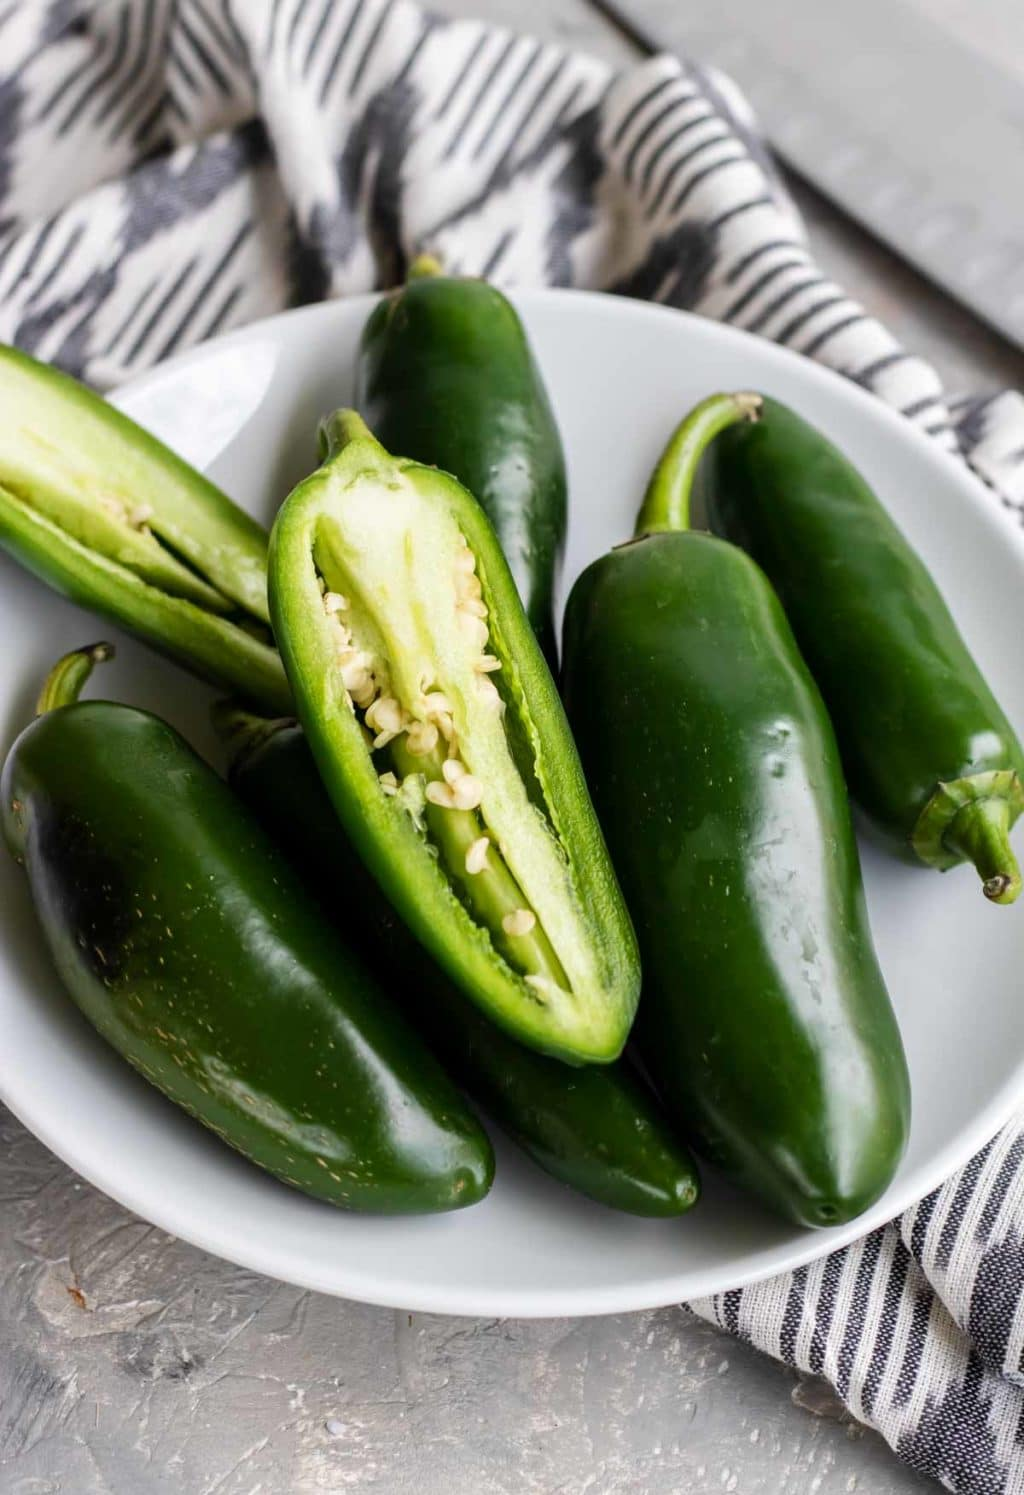 a white bowl of jalapenos with one split in half lengthwise